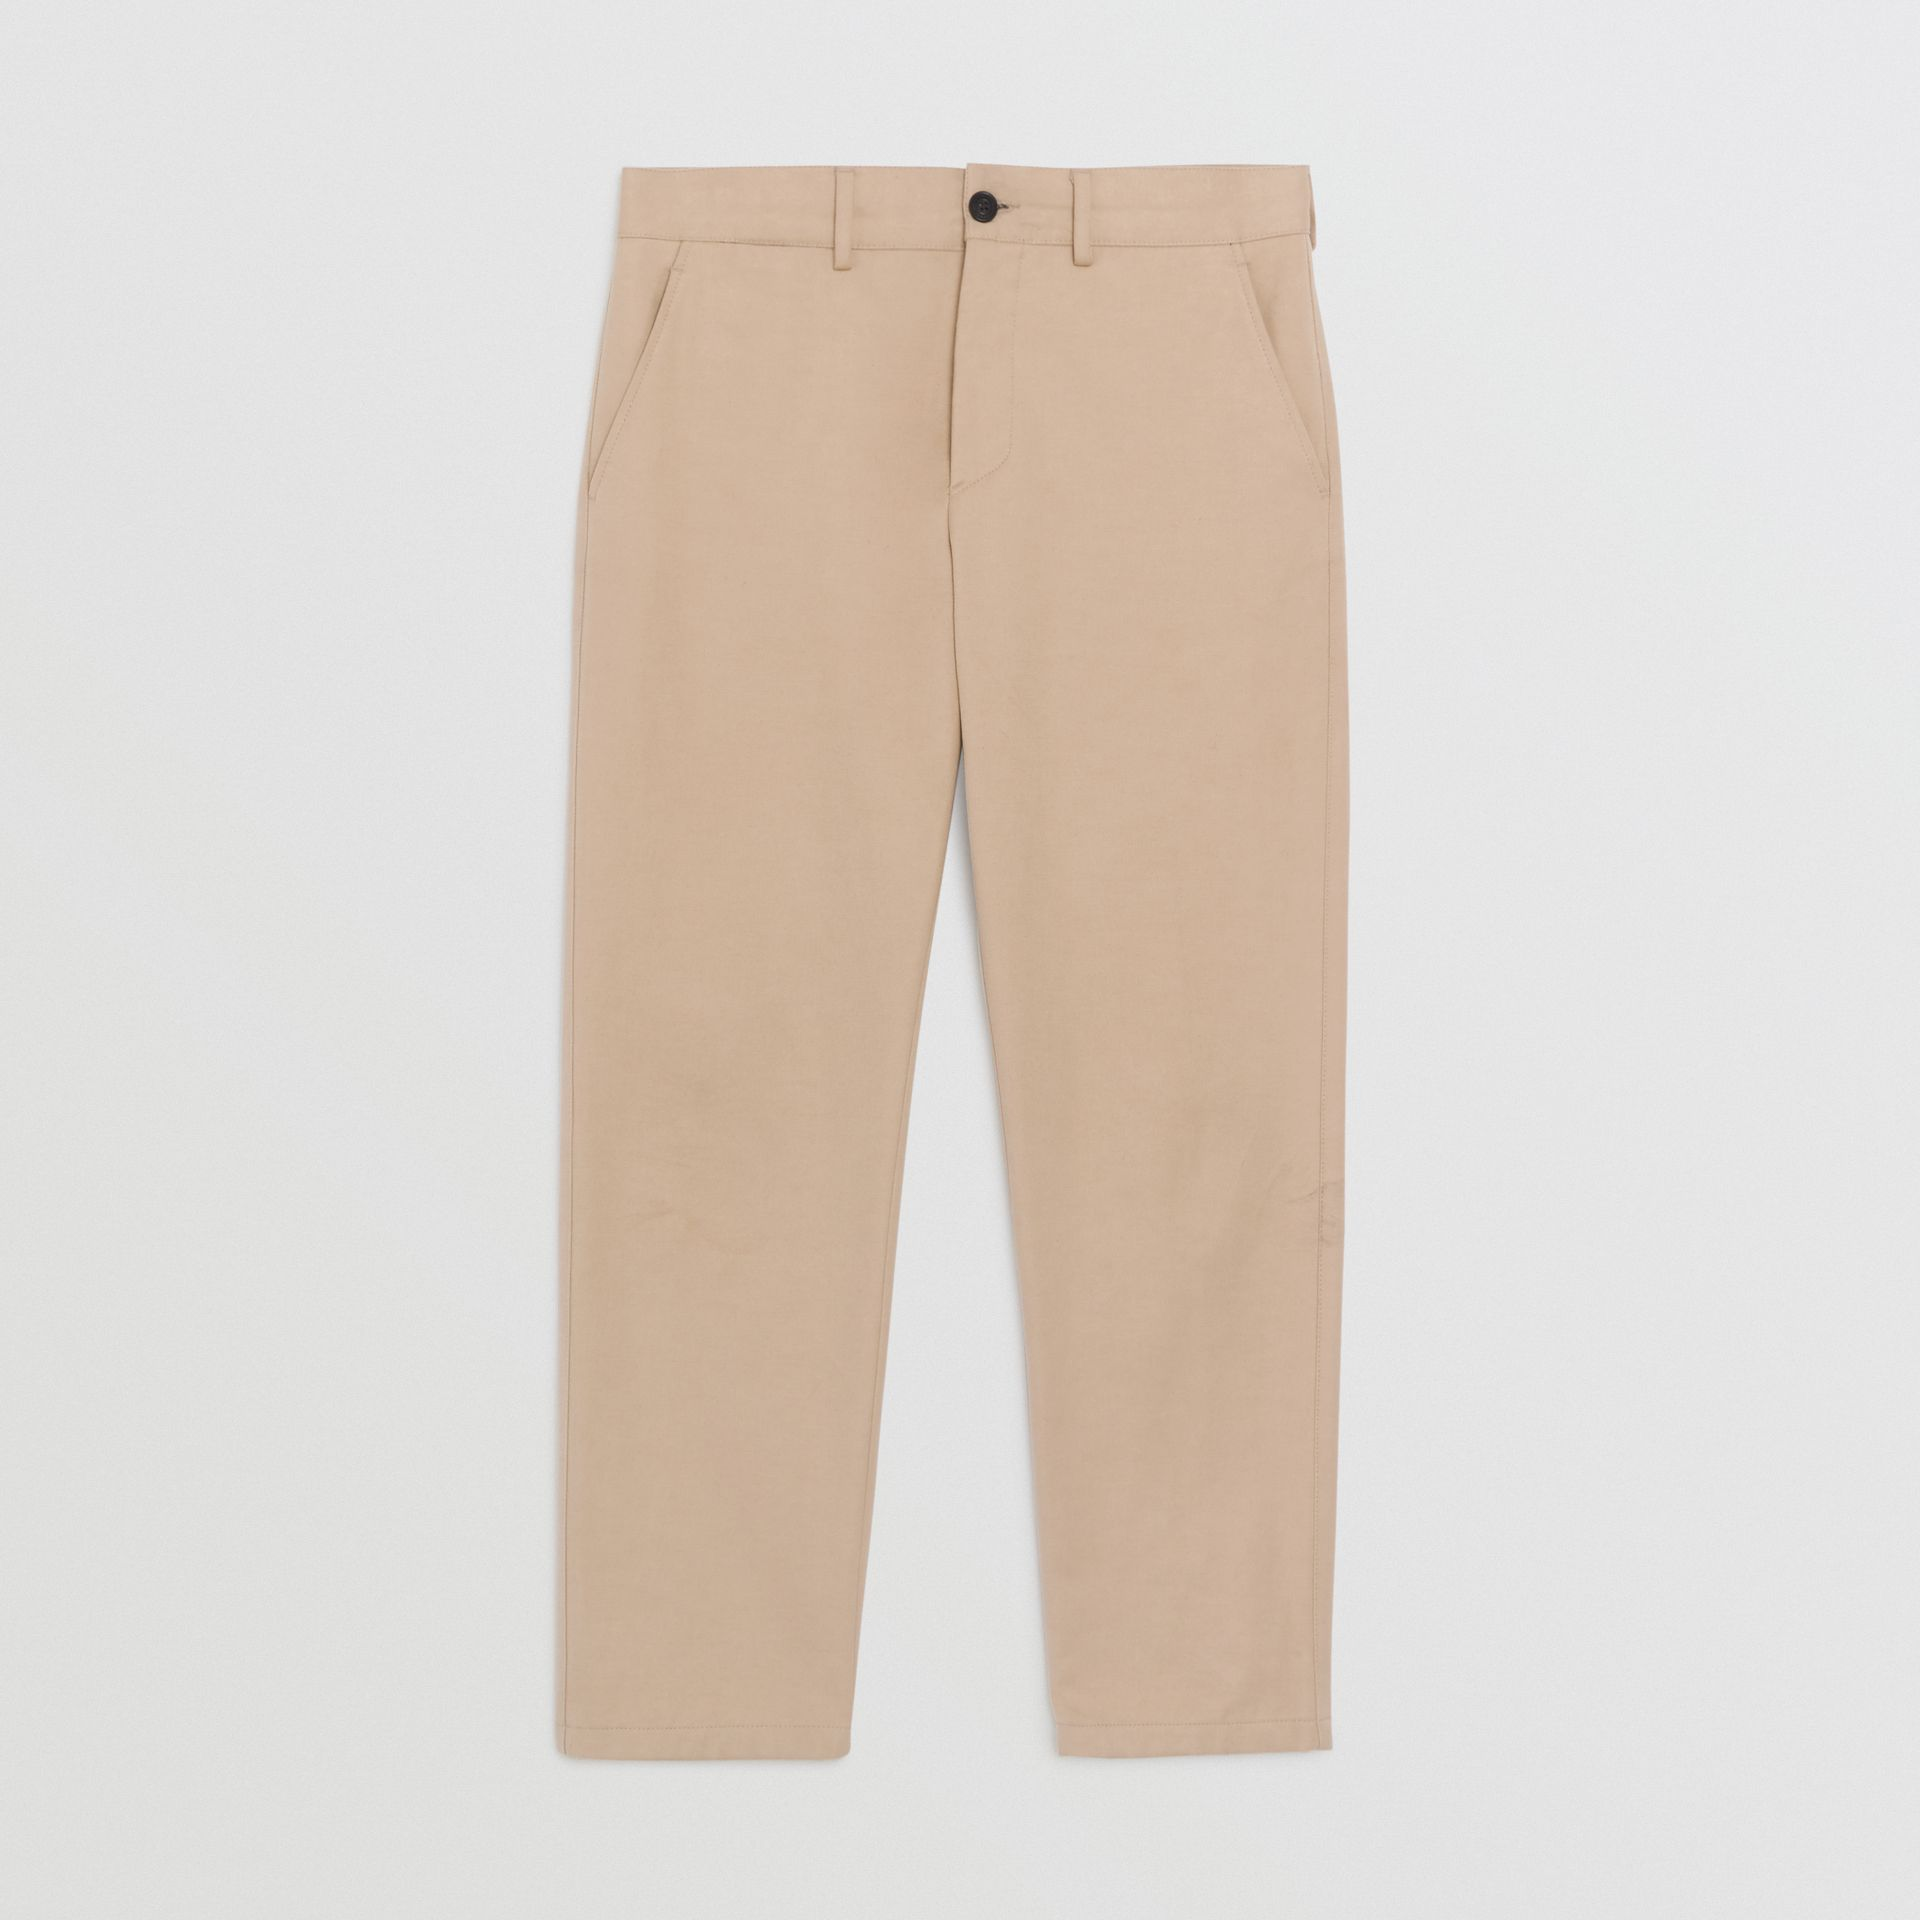 Slim Fit Cotton Blend Chinos in Stone - Men | Burberry Hong Kong - gallery image 3